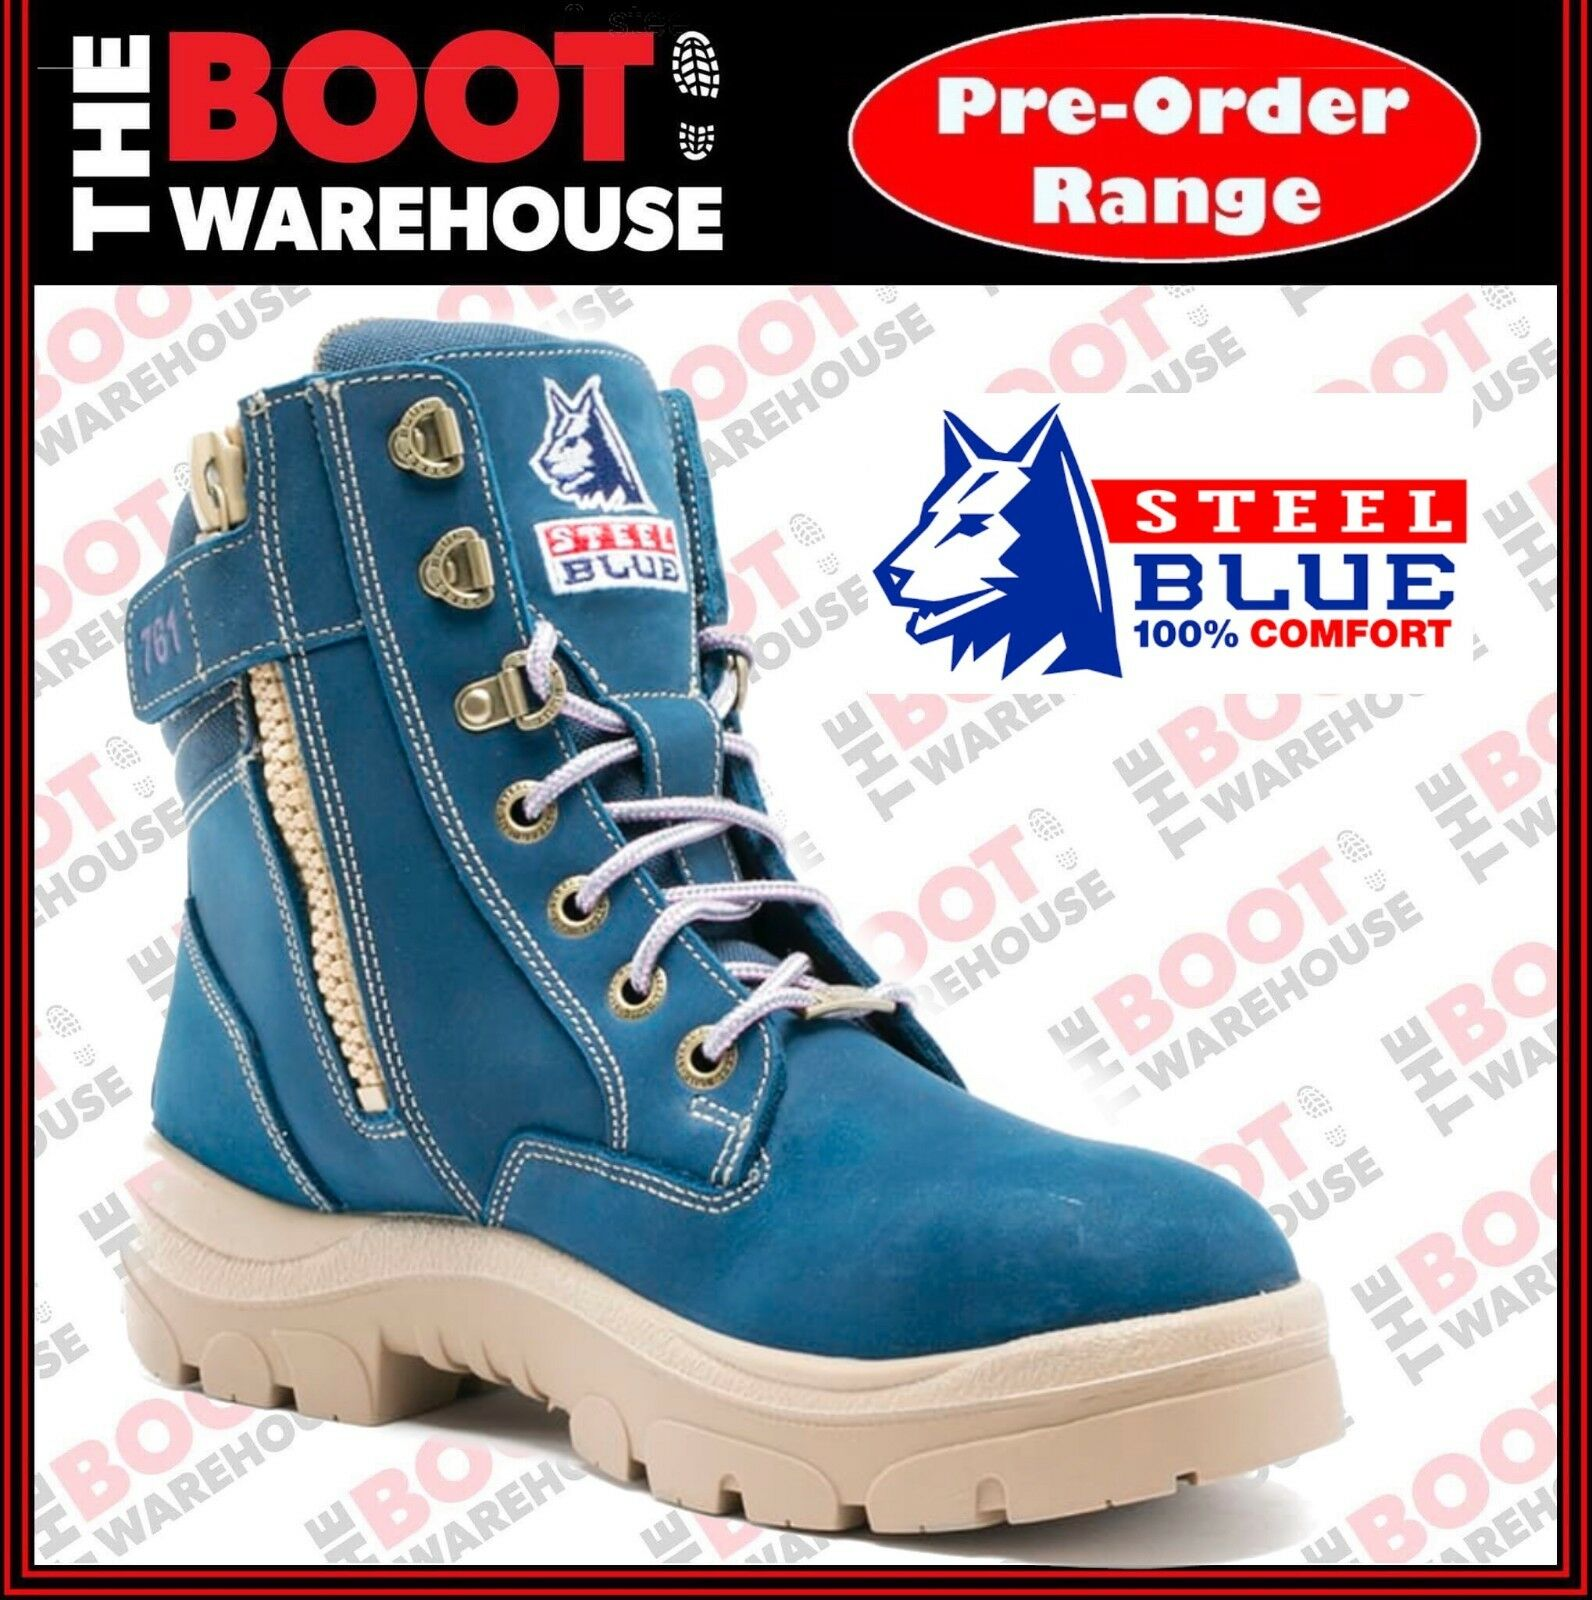 Steel azul 512761 Wohombres azul Southern Cross Zip, 150mm Ankle, Safety bota